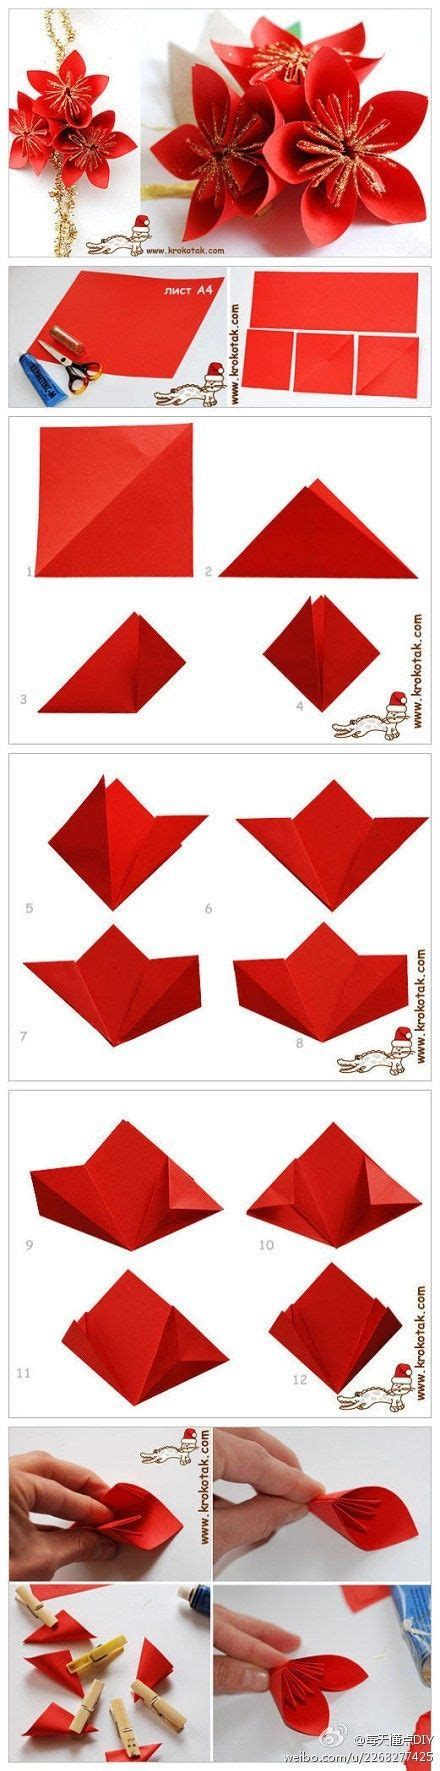 origami poinsettia flower origami poinsettia pictures photos and images for